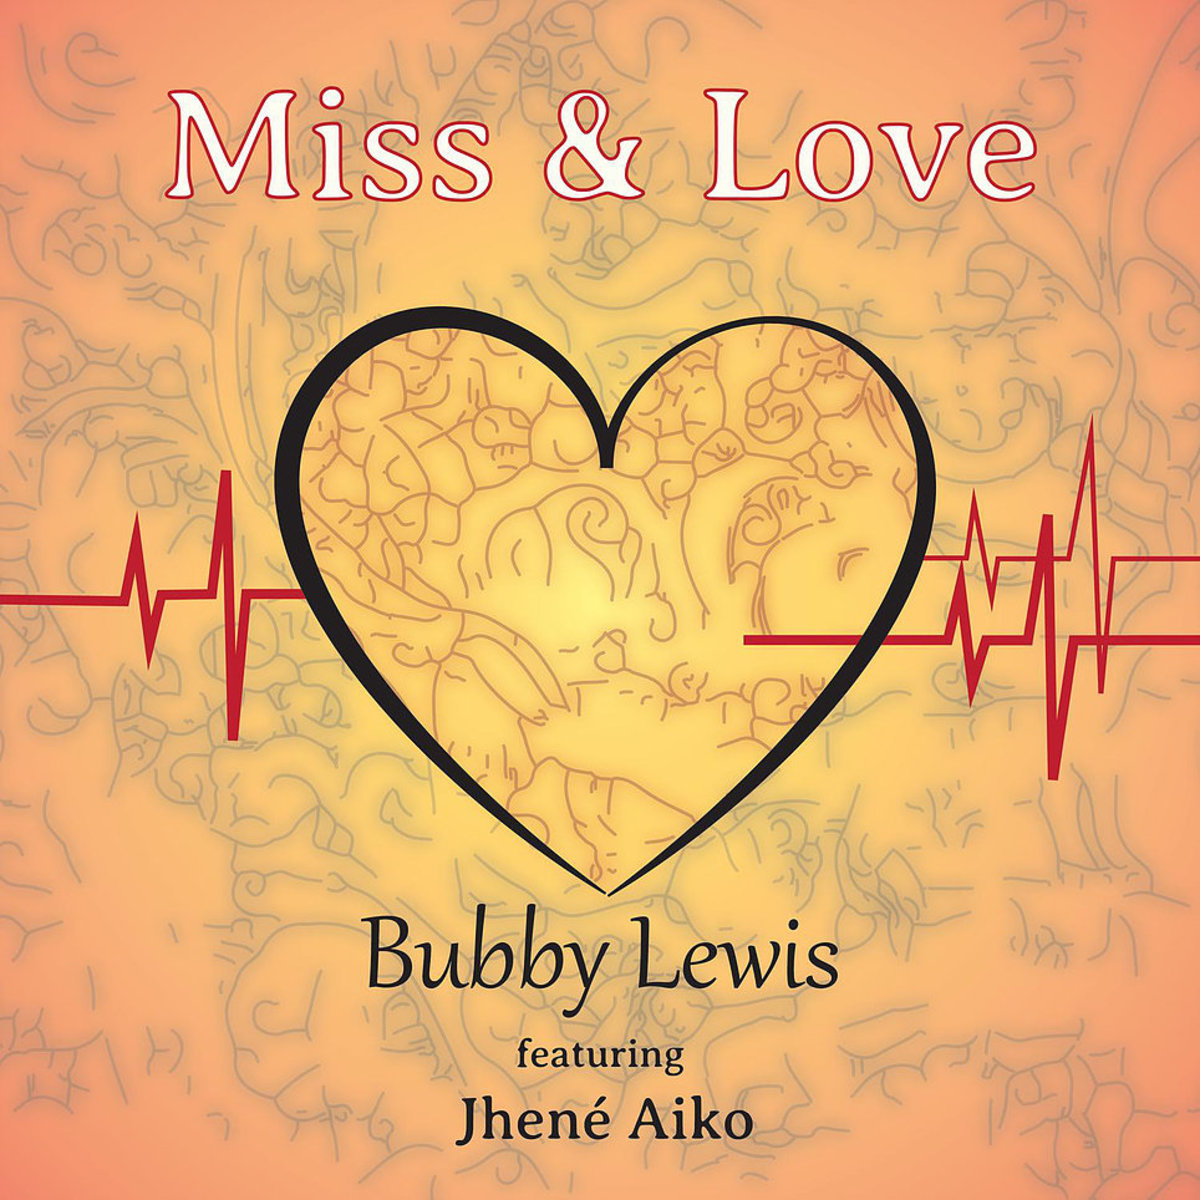 miss & love_cover-01